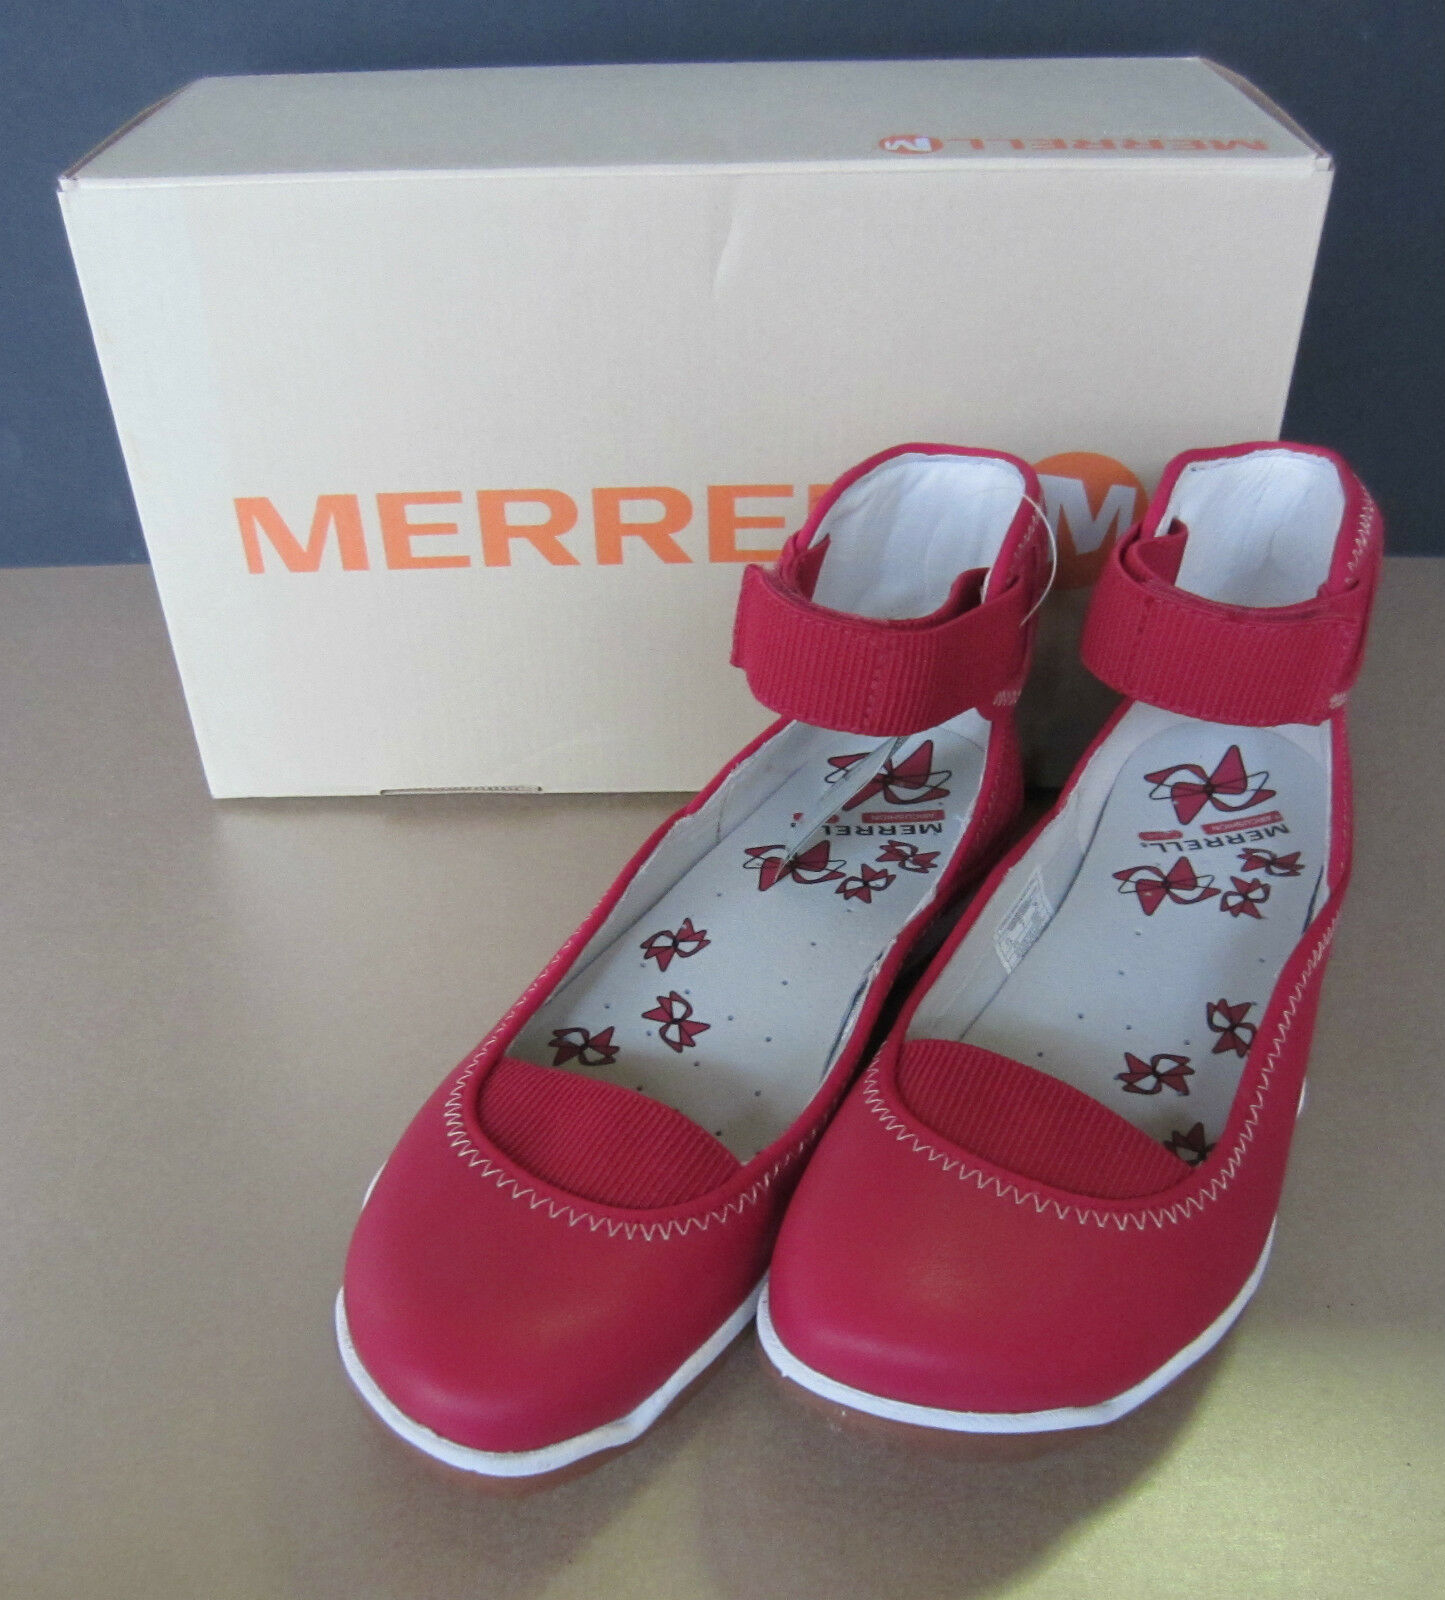 Merrell - Loreli Band - Persian rouge Casual chaussures   Trainer GREAT PRICE